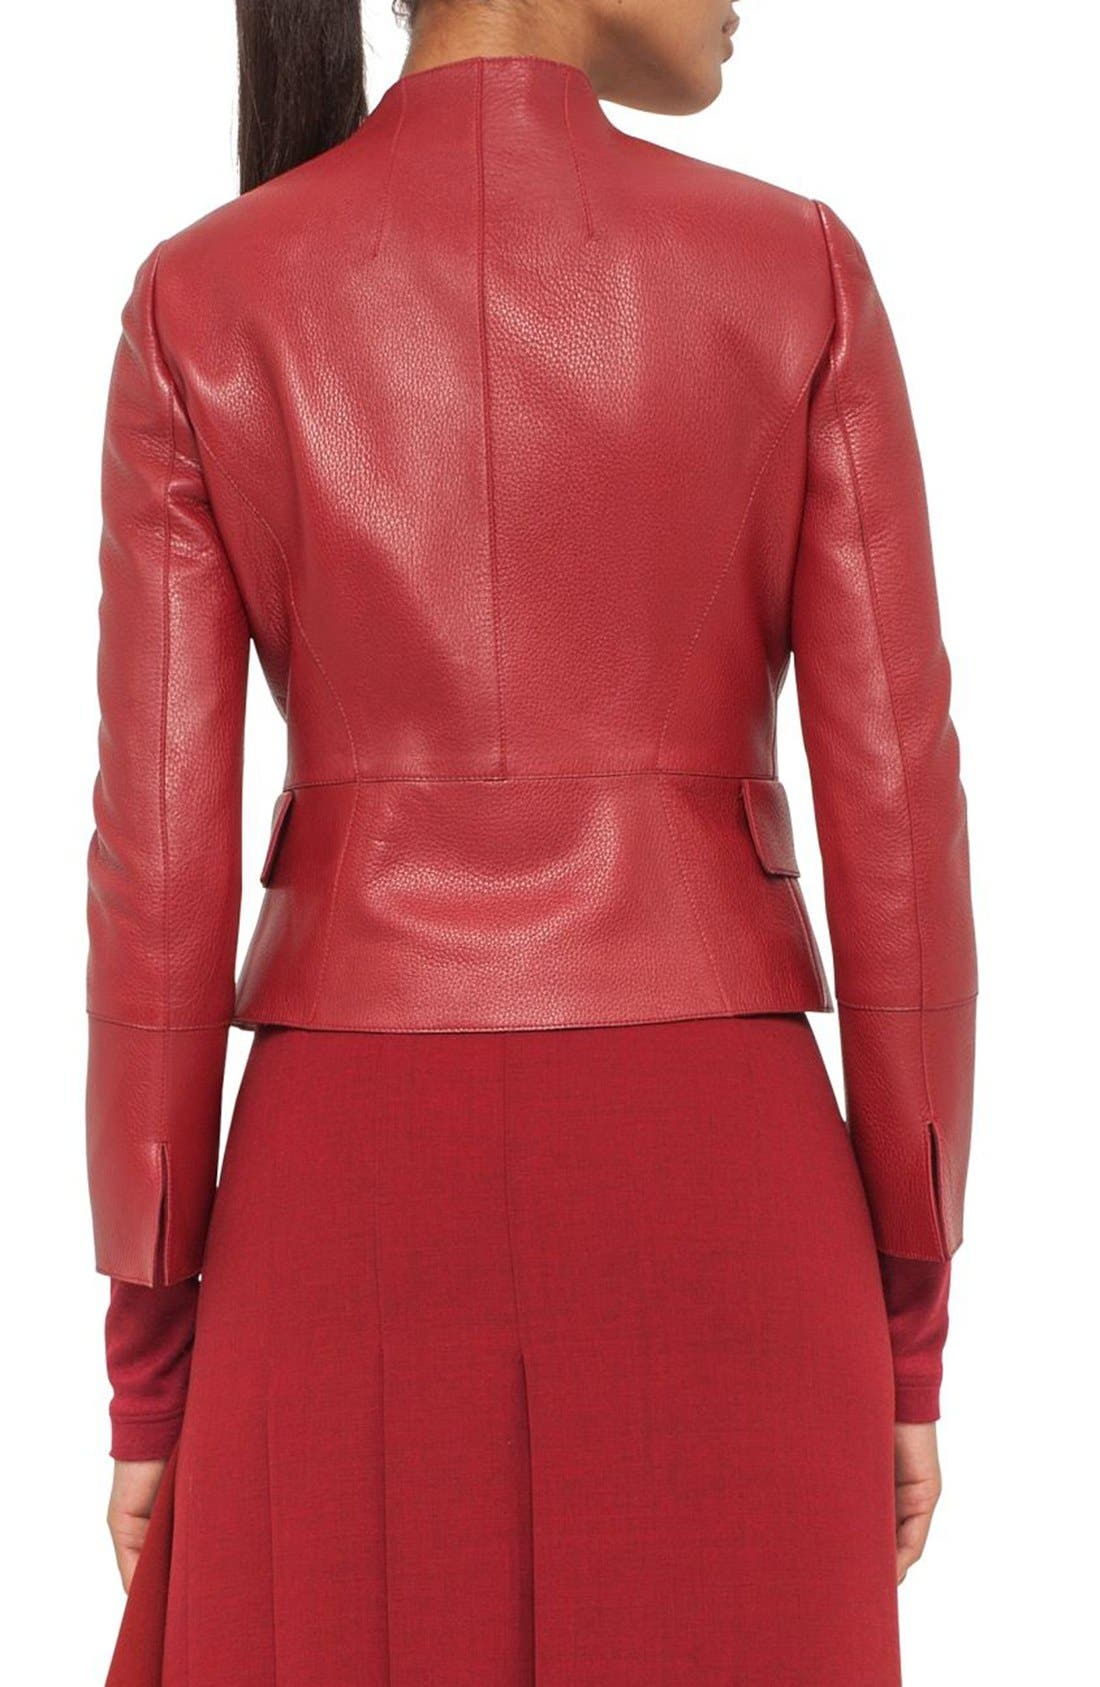 Nappa Leather Jacket,                             Alternate thumbnail 2, color,                             Miracle Berry